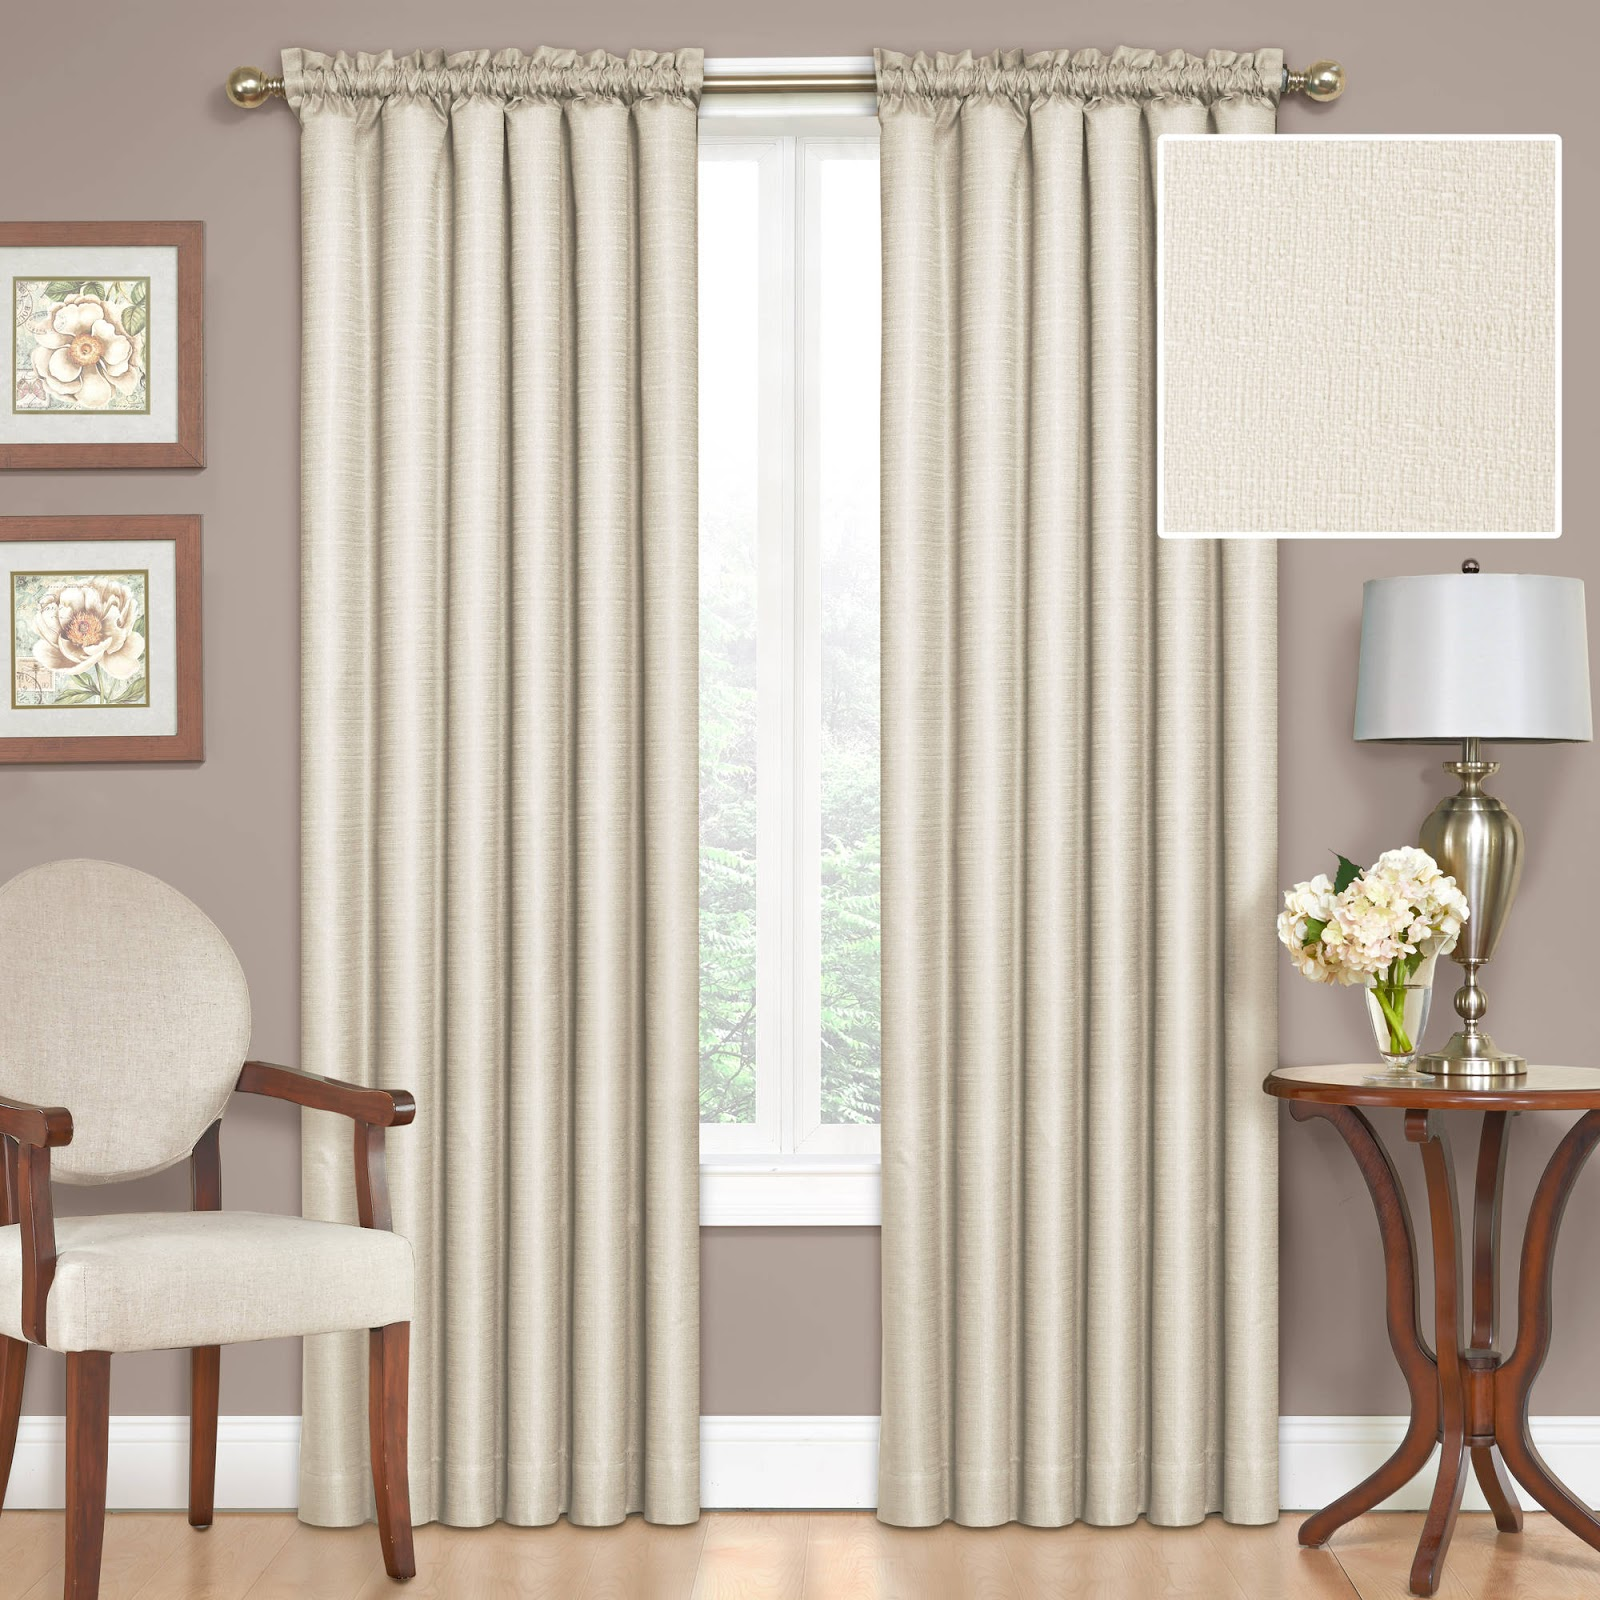 Different Types Of Curtain Rods Styles Curtains And Drapes Window